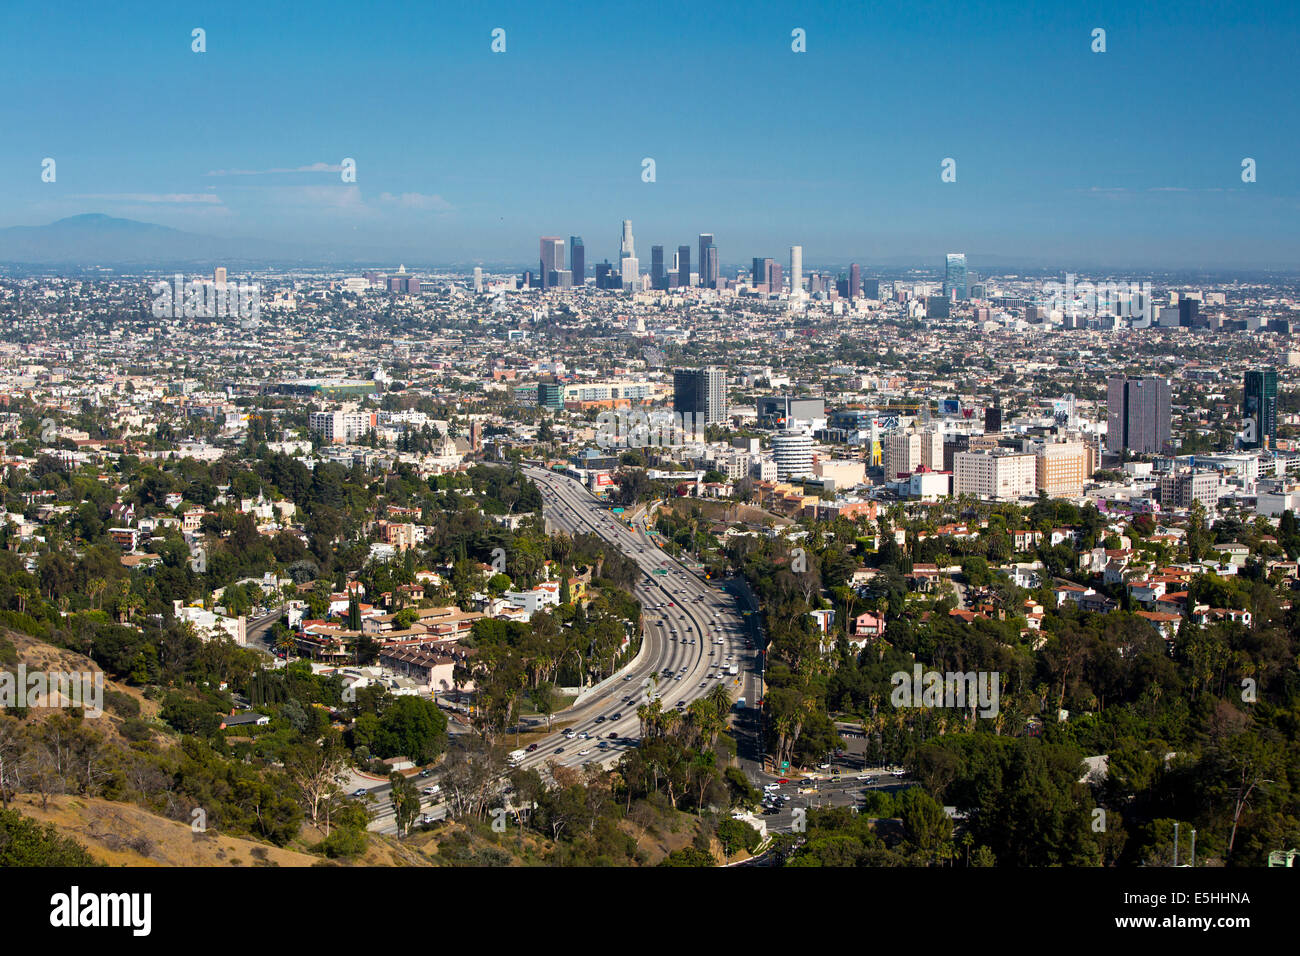 View over LA skyline and the Hollywood Freeway in Los Angeles, California, USA - Stock Image